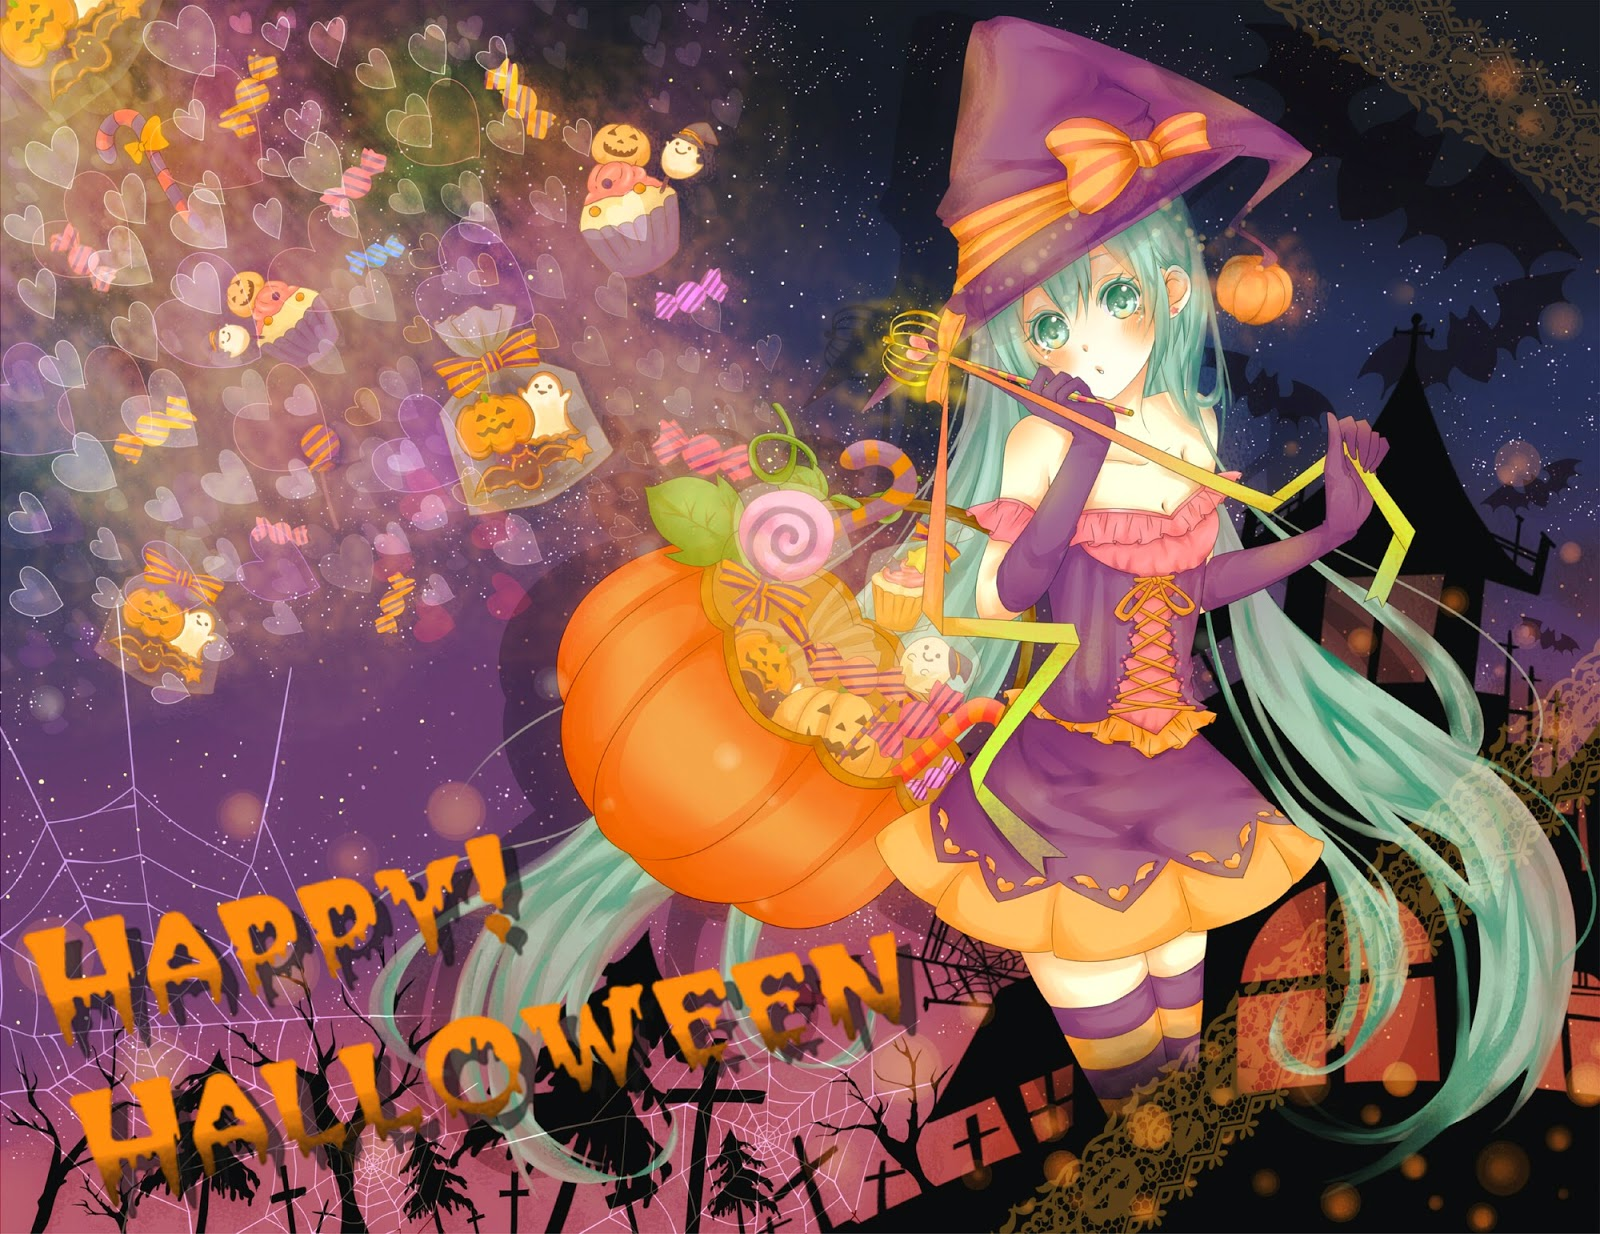 Happy-halloween-anime-girl-image-picture-HD-wallpaper.jpg